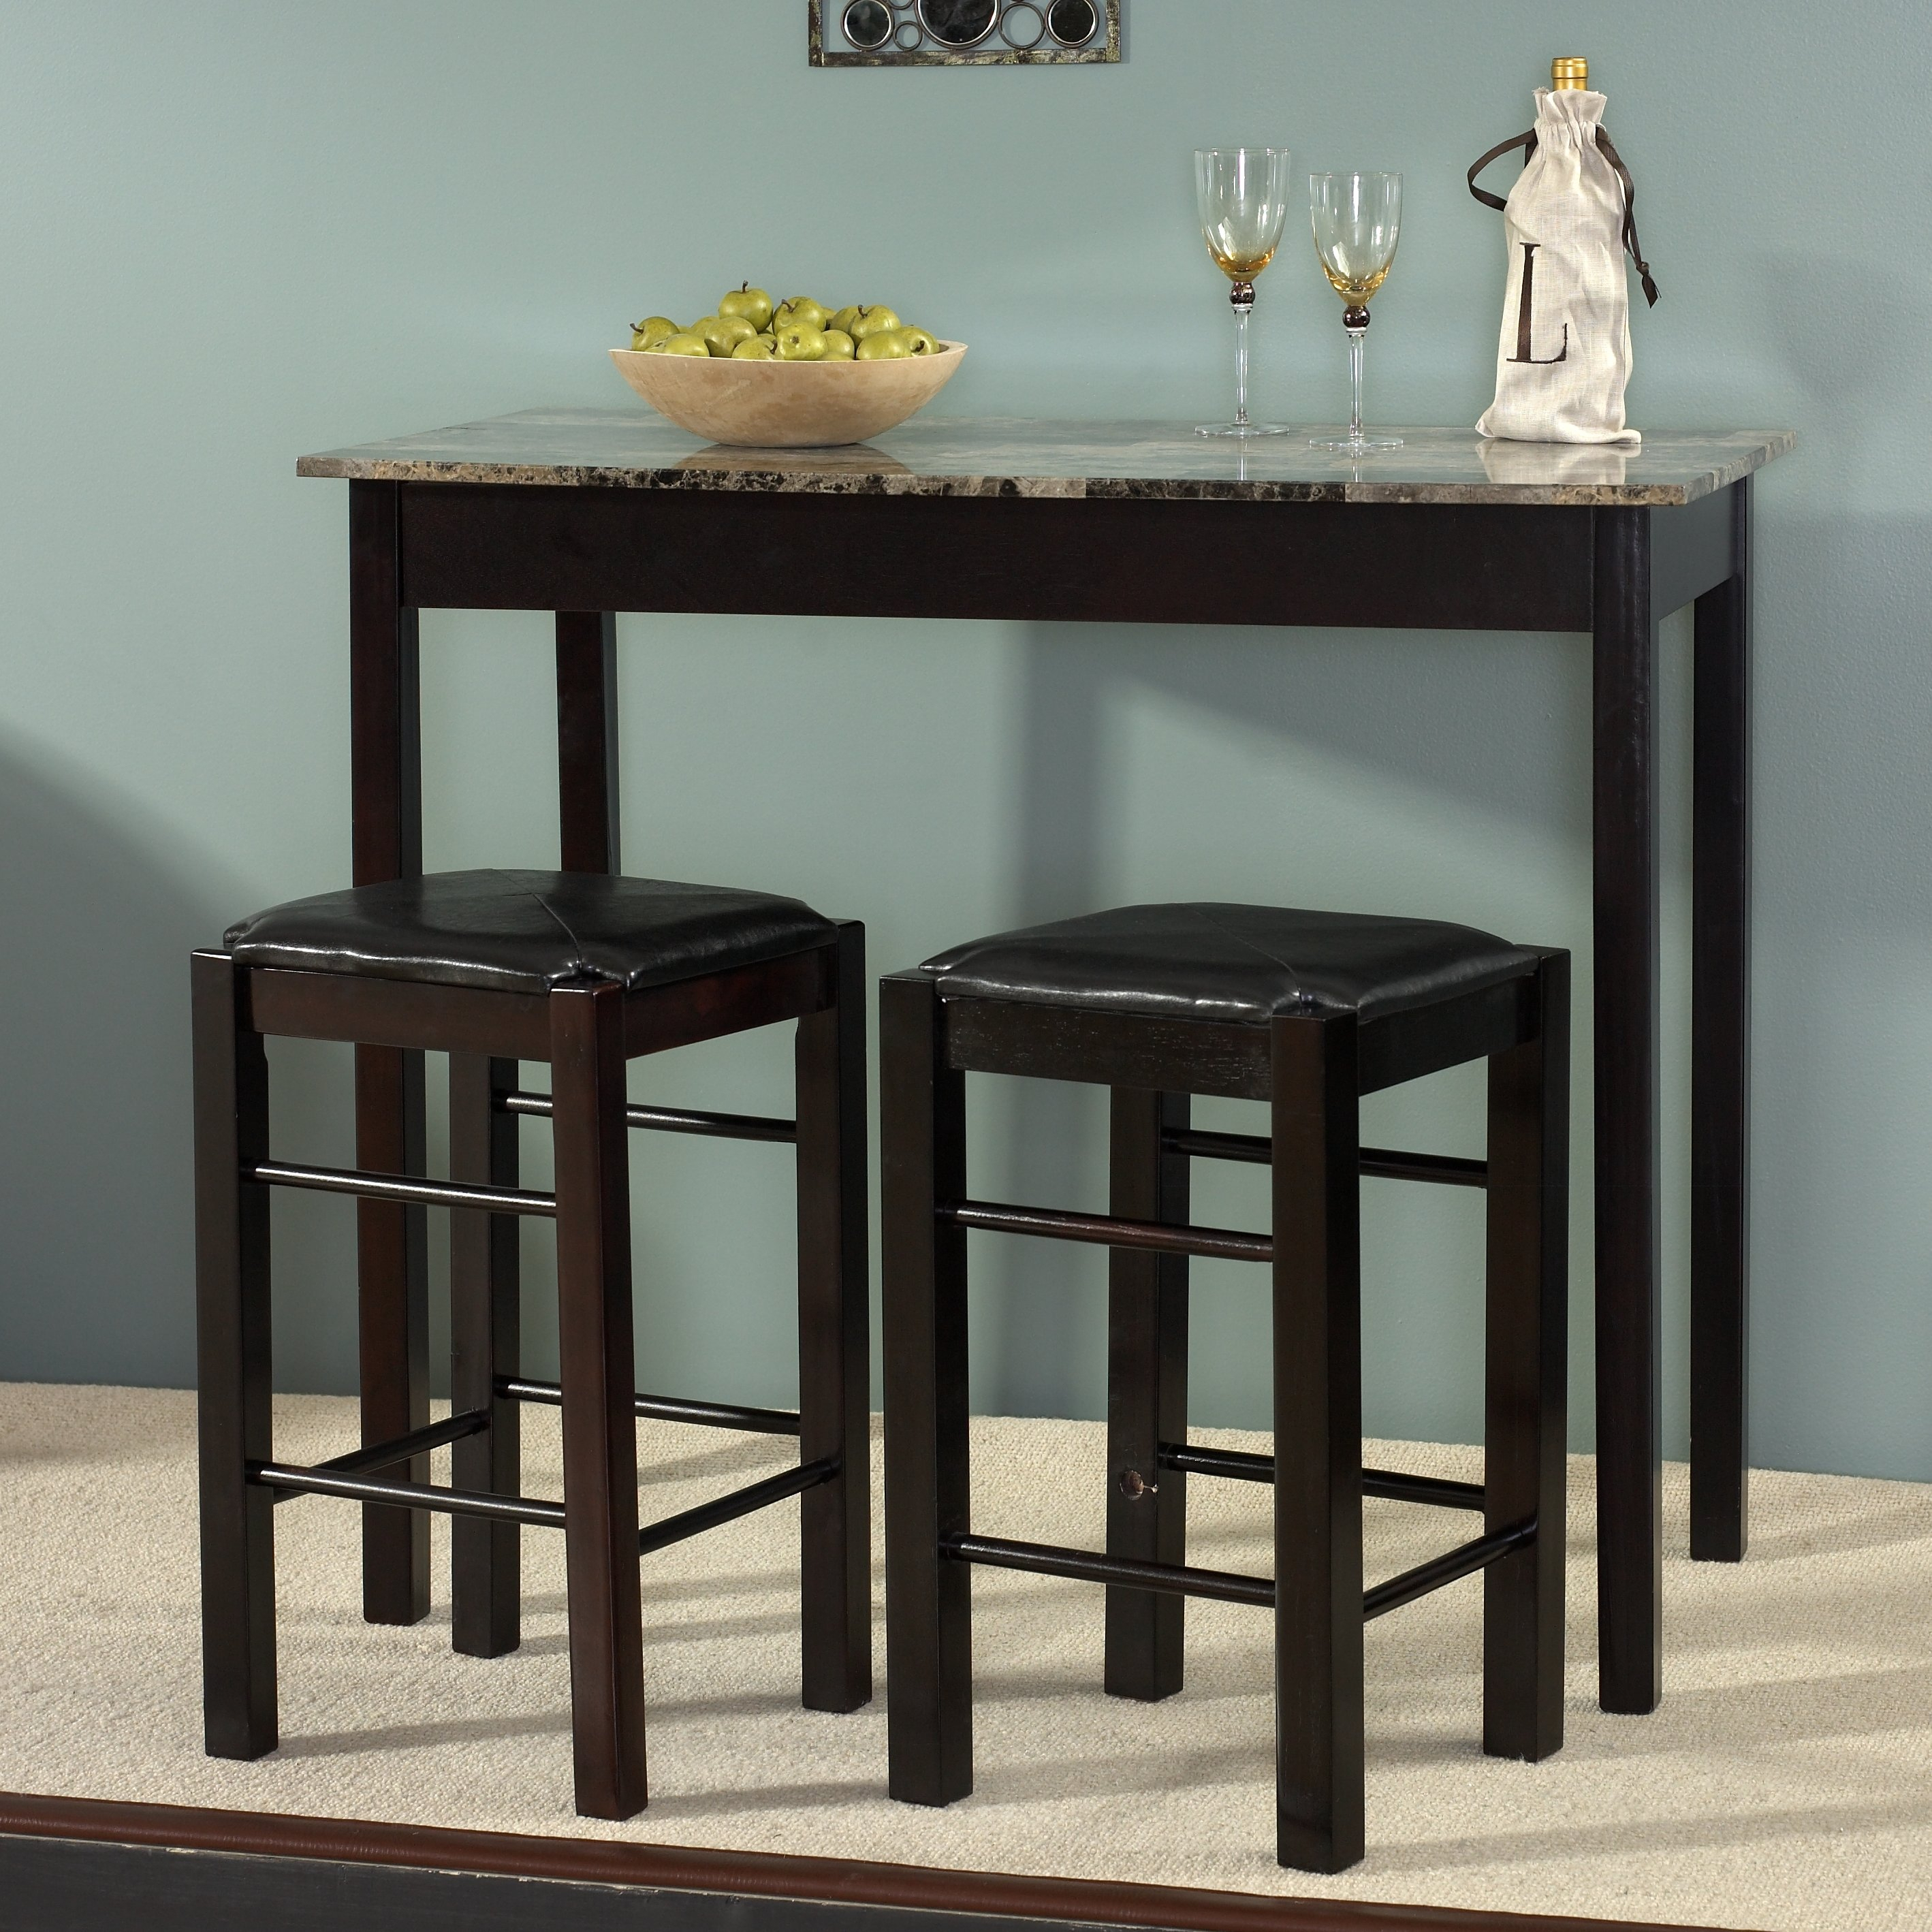 Sheetz 3 Piece Counter Height Dining Set In Most Current Tenney 3 Piece Counter Height Dining Sets (View 4 of 20)